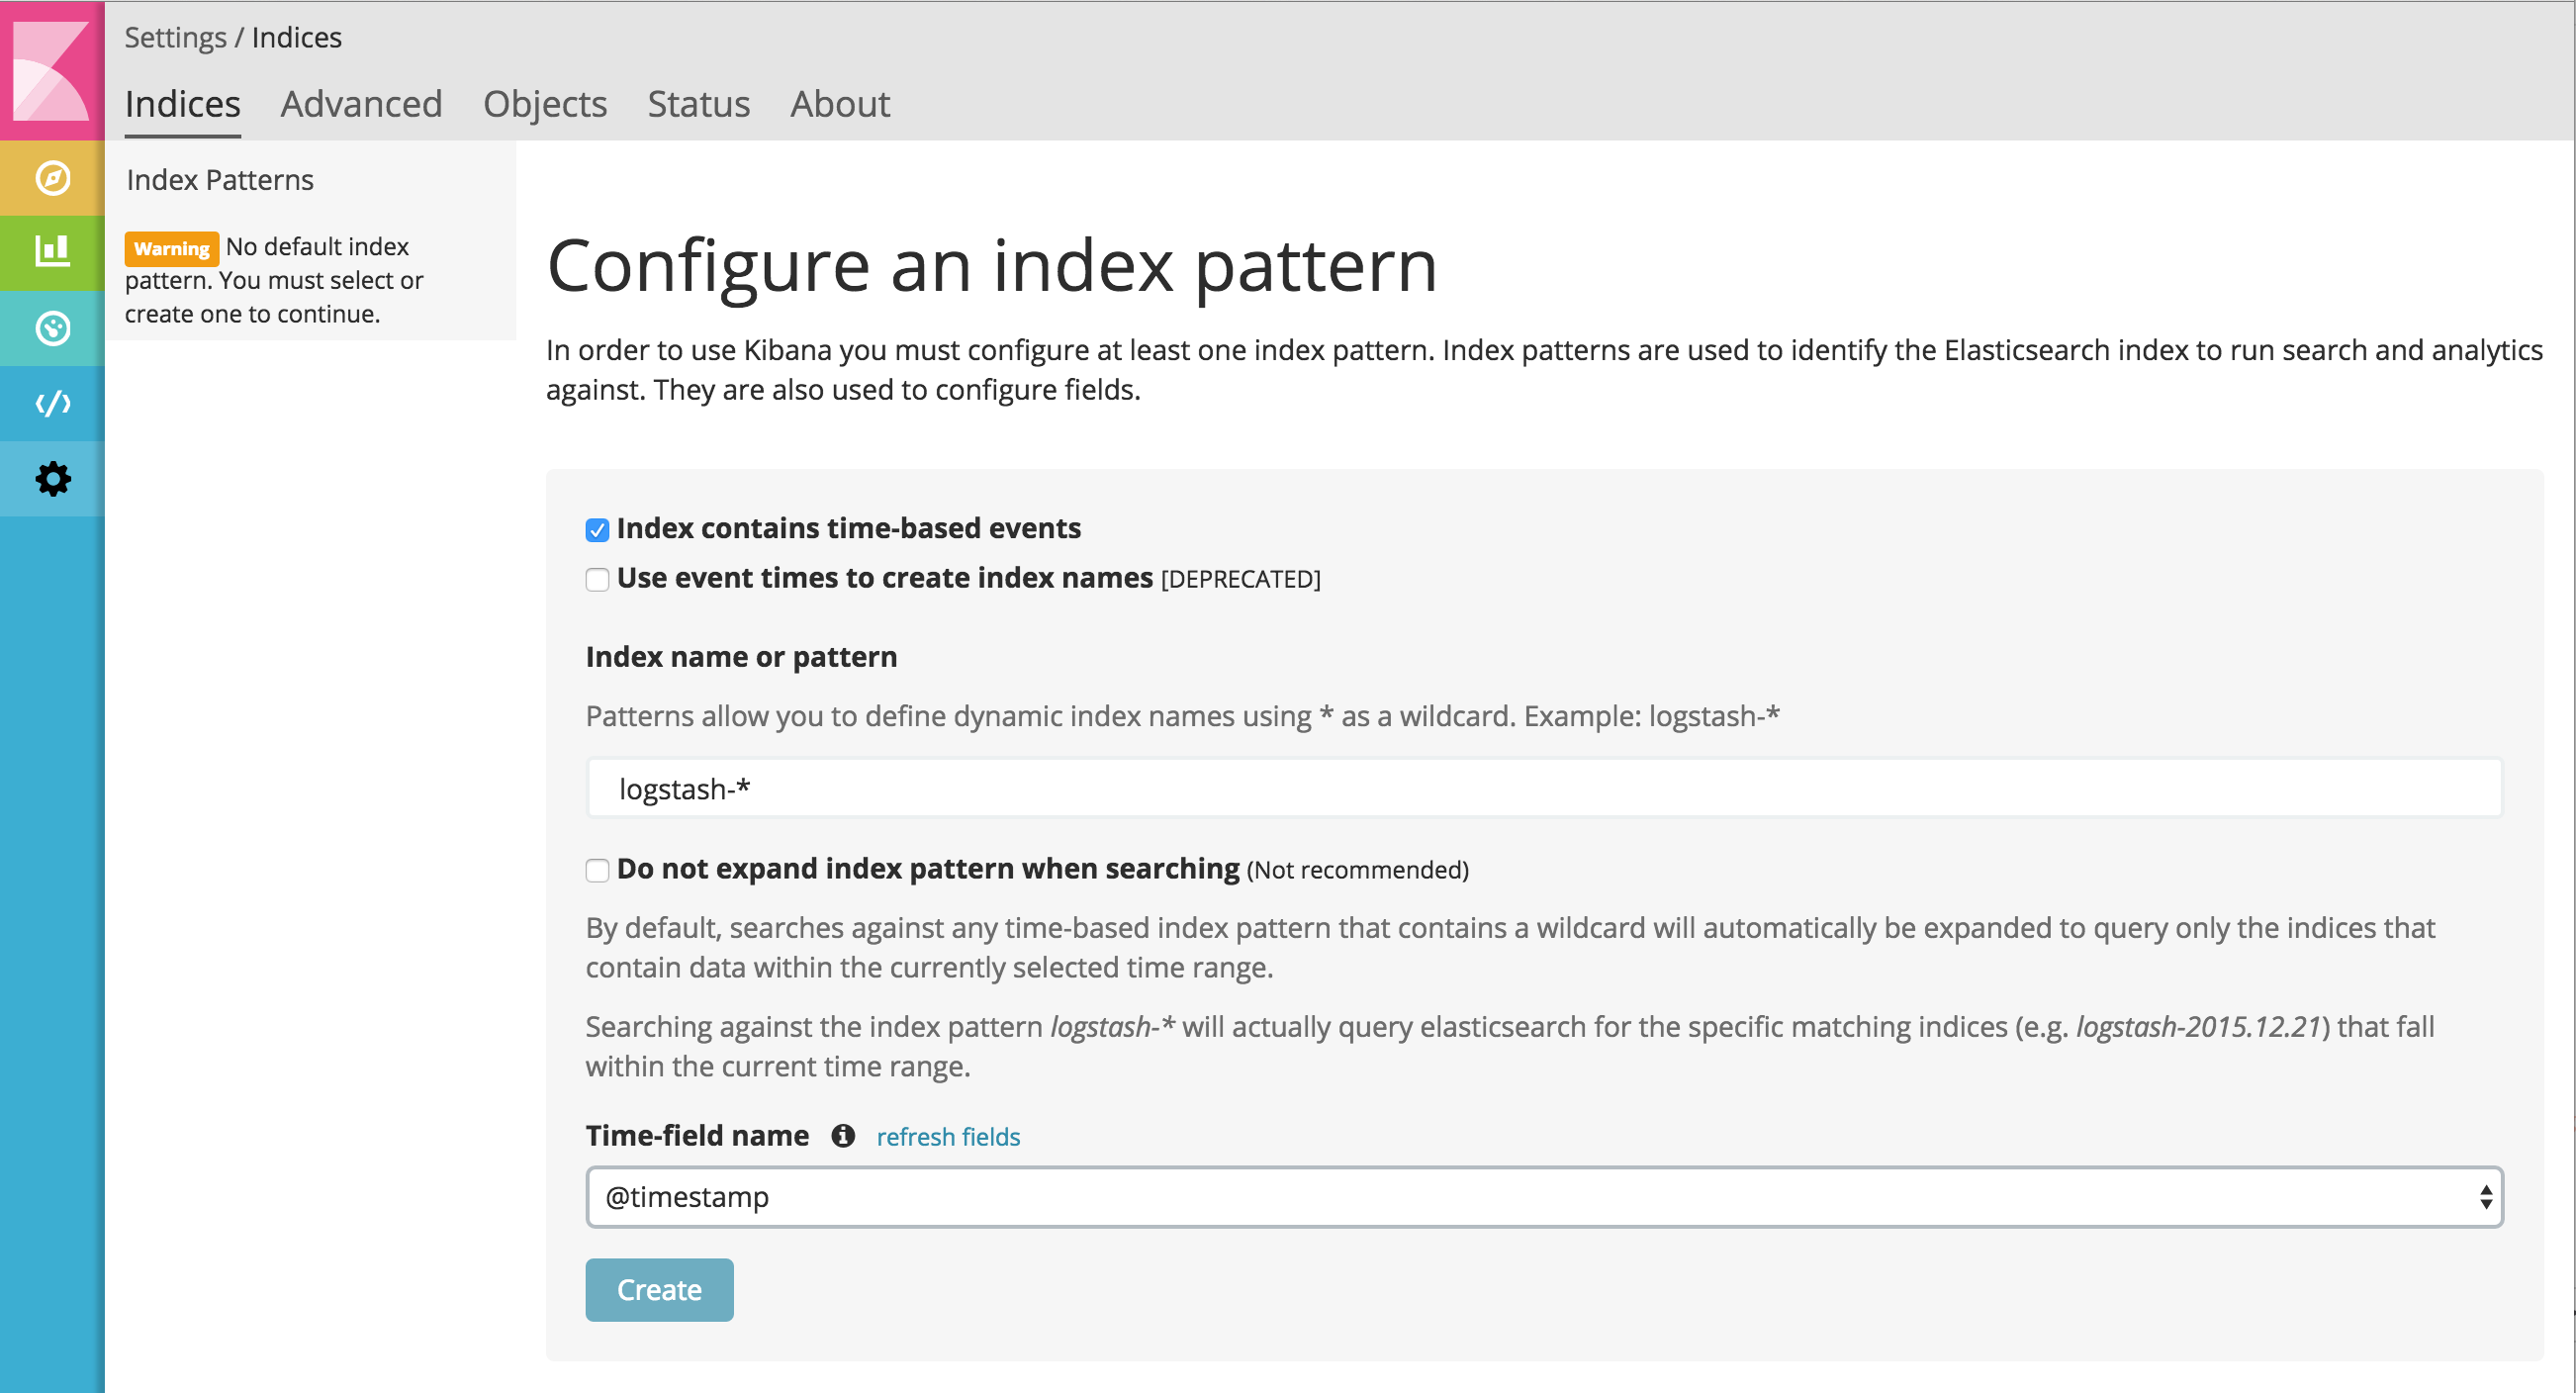 Creating an index pattern